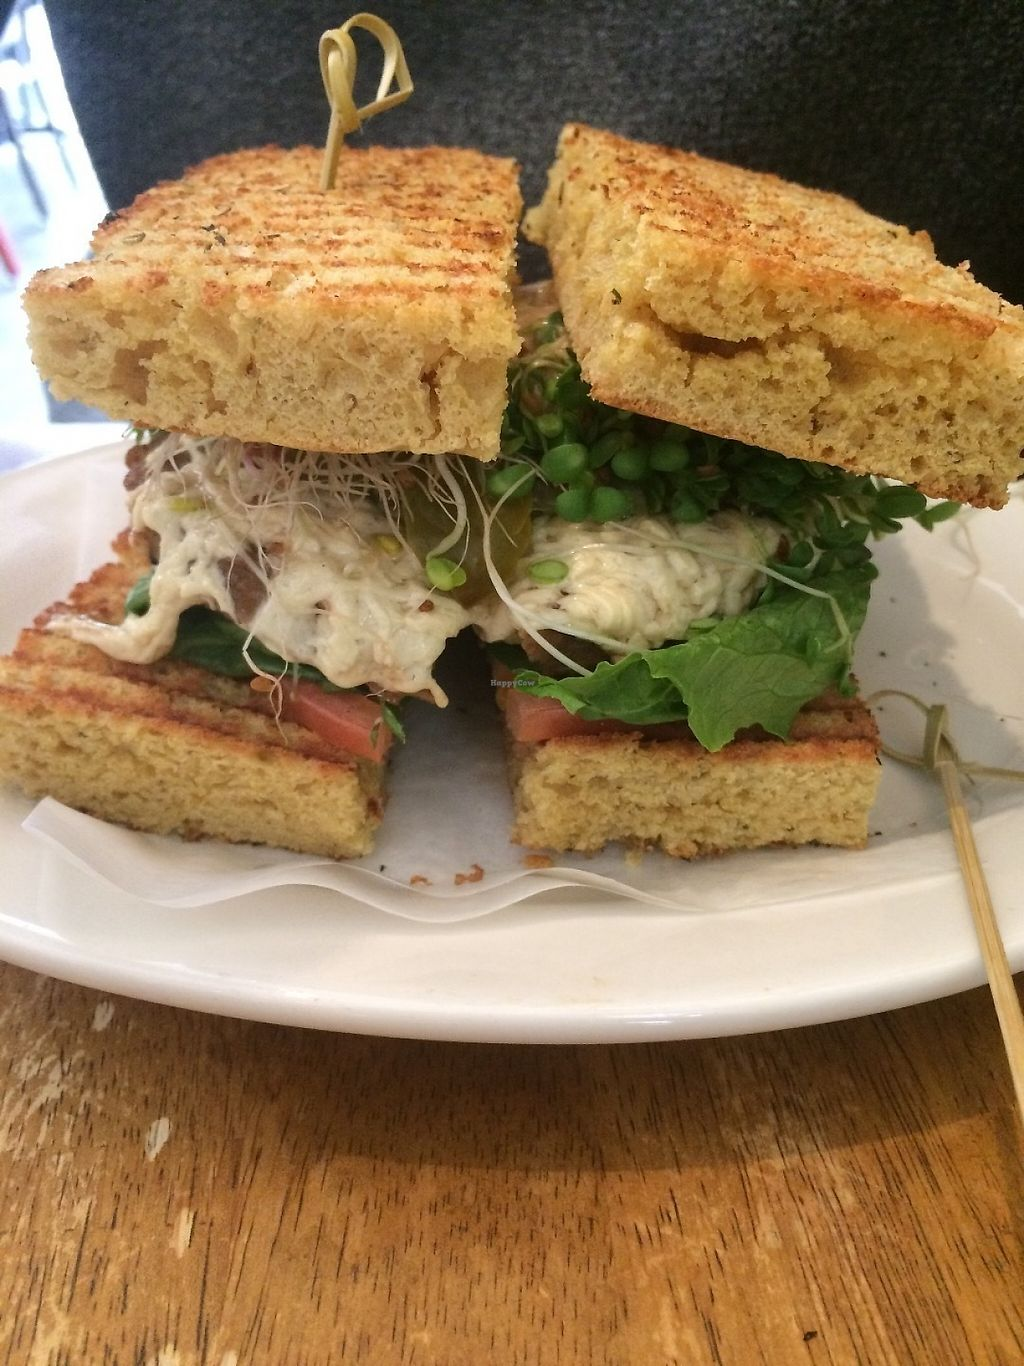 """Photo of Peacefood Cafe - Uptown  by <a href=""""/members/profile/MyGreenTongue"""">MyGreenTongue</a> <br/>salad <br/> May 24, 2017  - <a href='/contact/abuse/image/17713/262173'>Report</a>"""